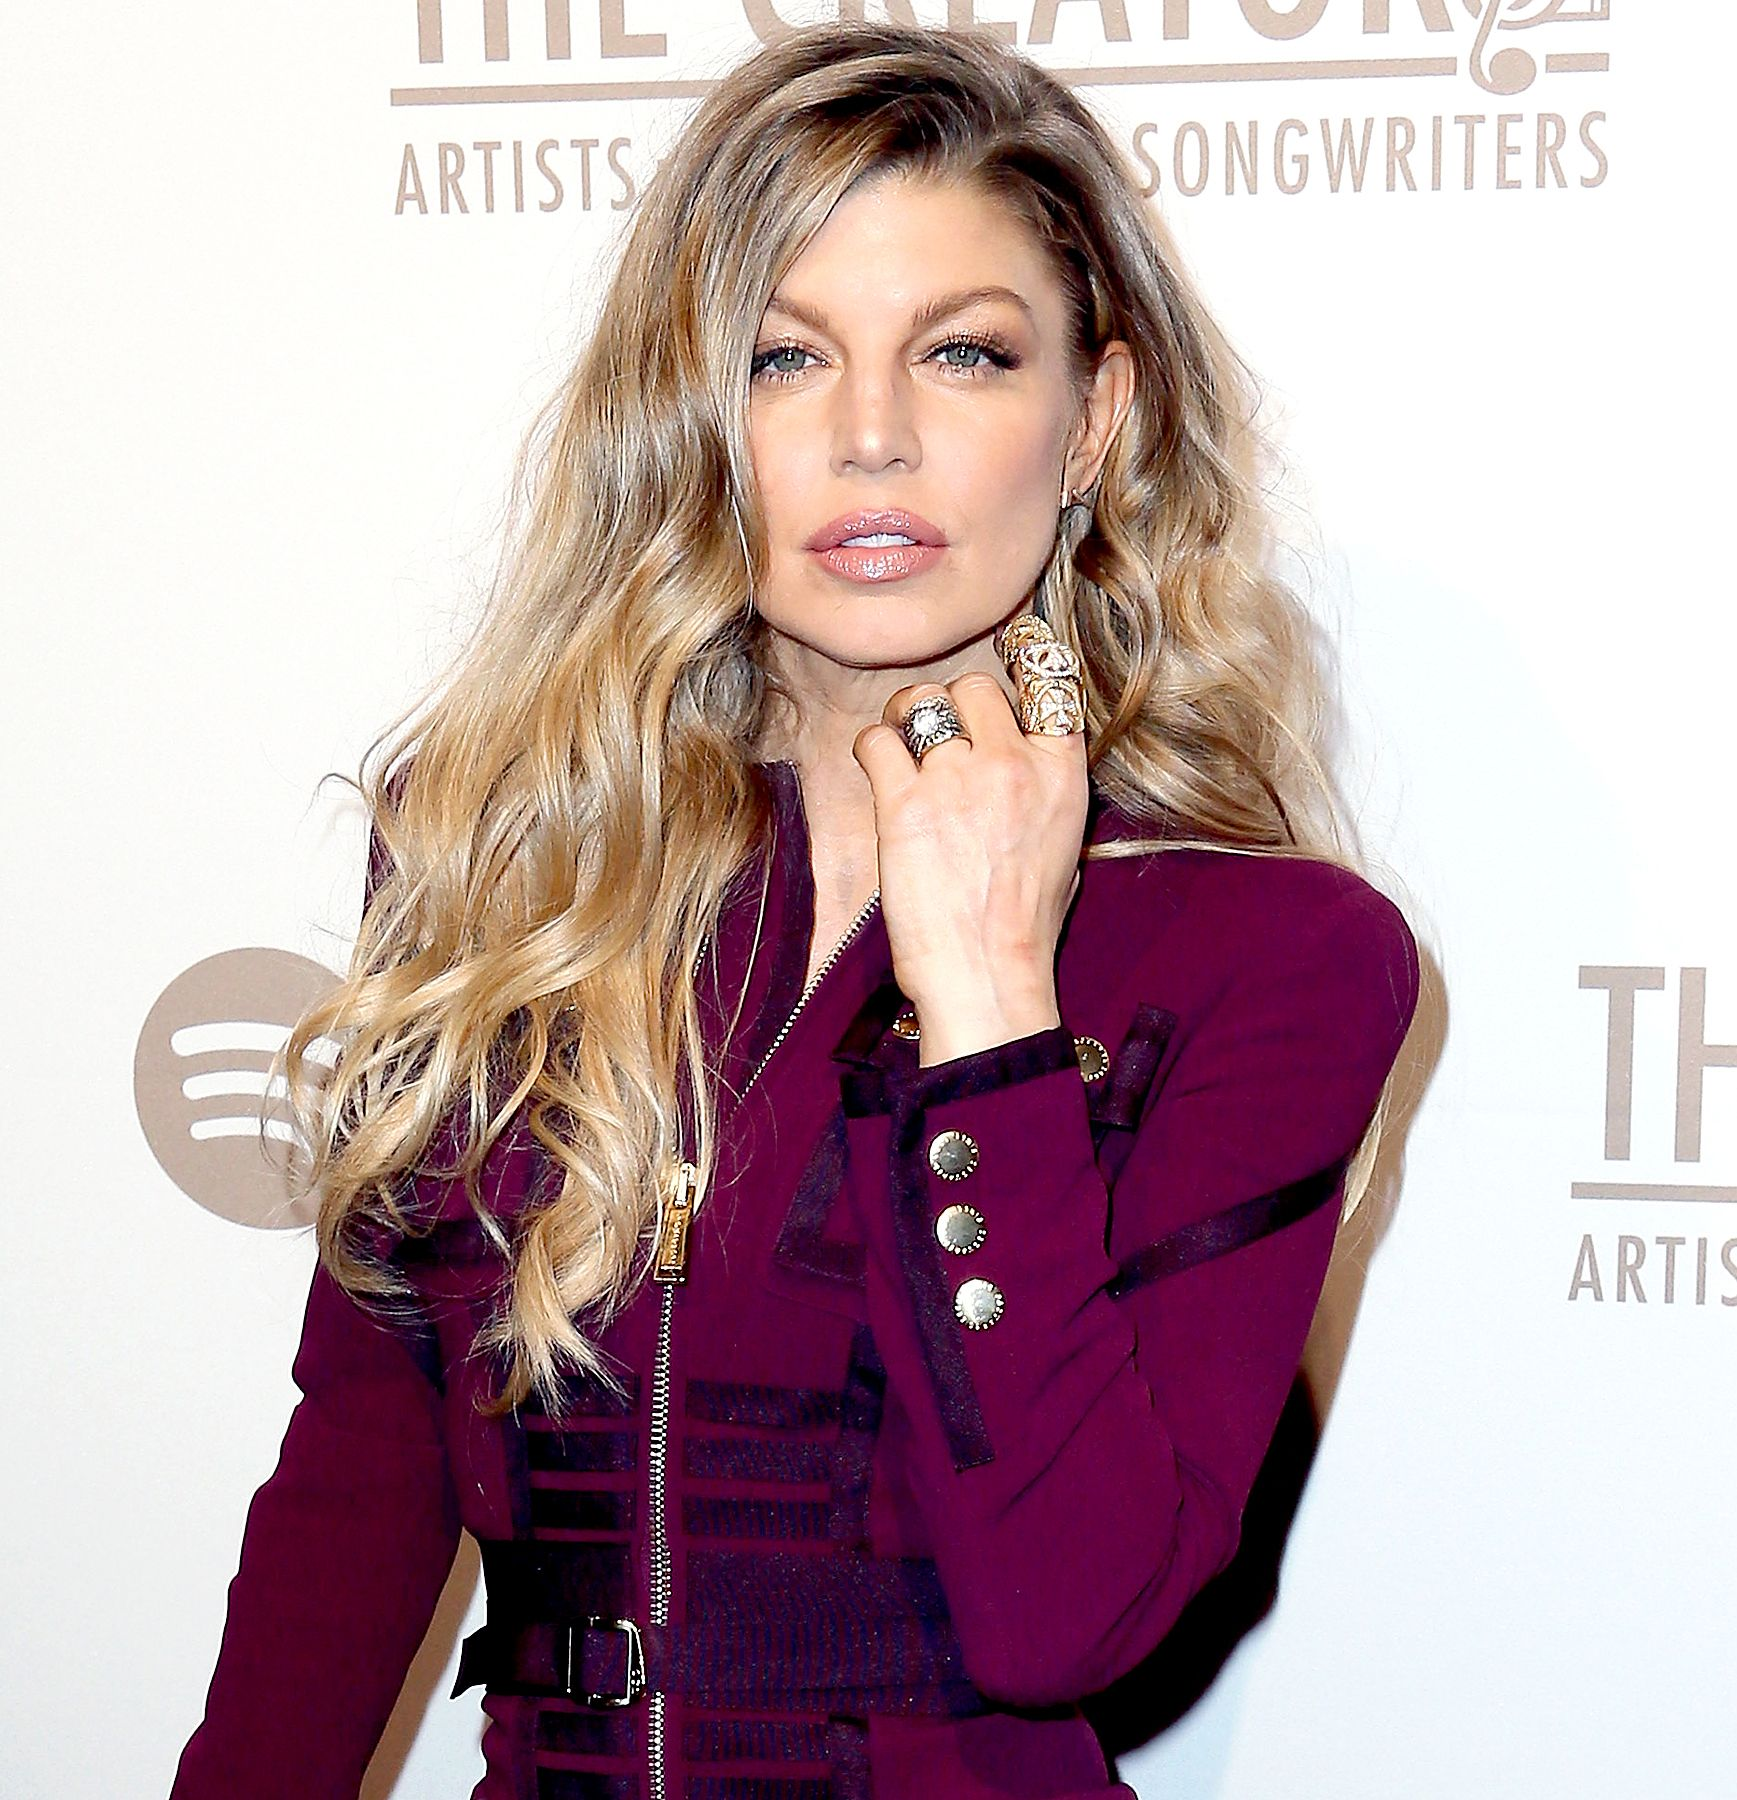 Pin by Funguy on Fergie Fergie, Stacy ferguson, Her hair